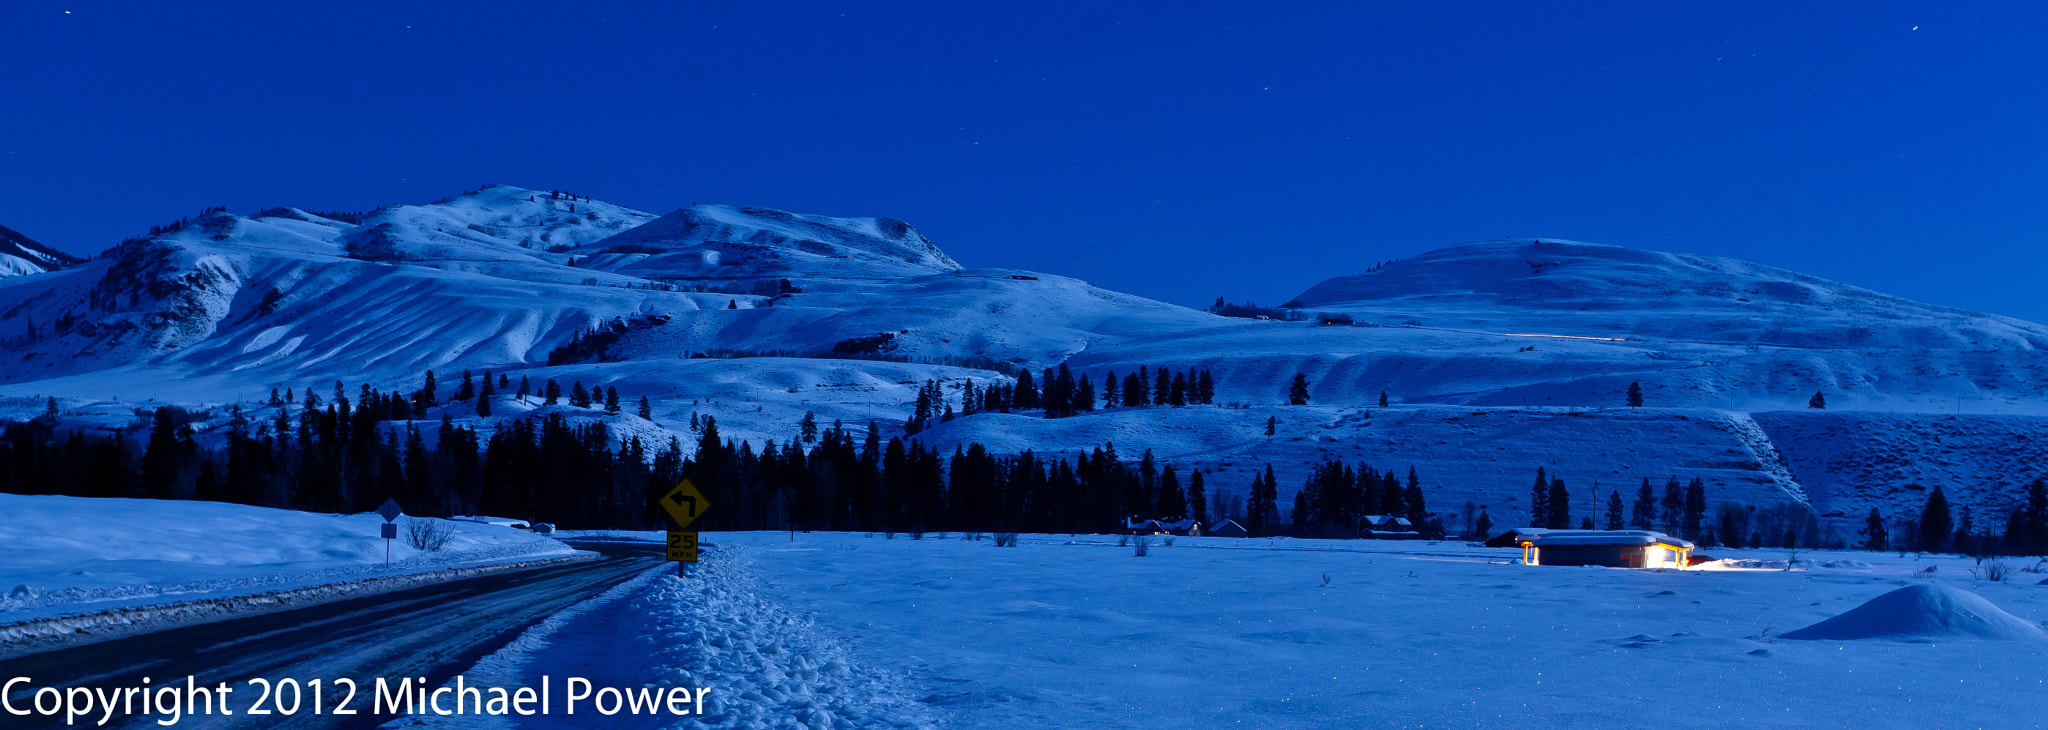 Photograph Methow Moonlight by Michael Power on 500px